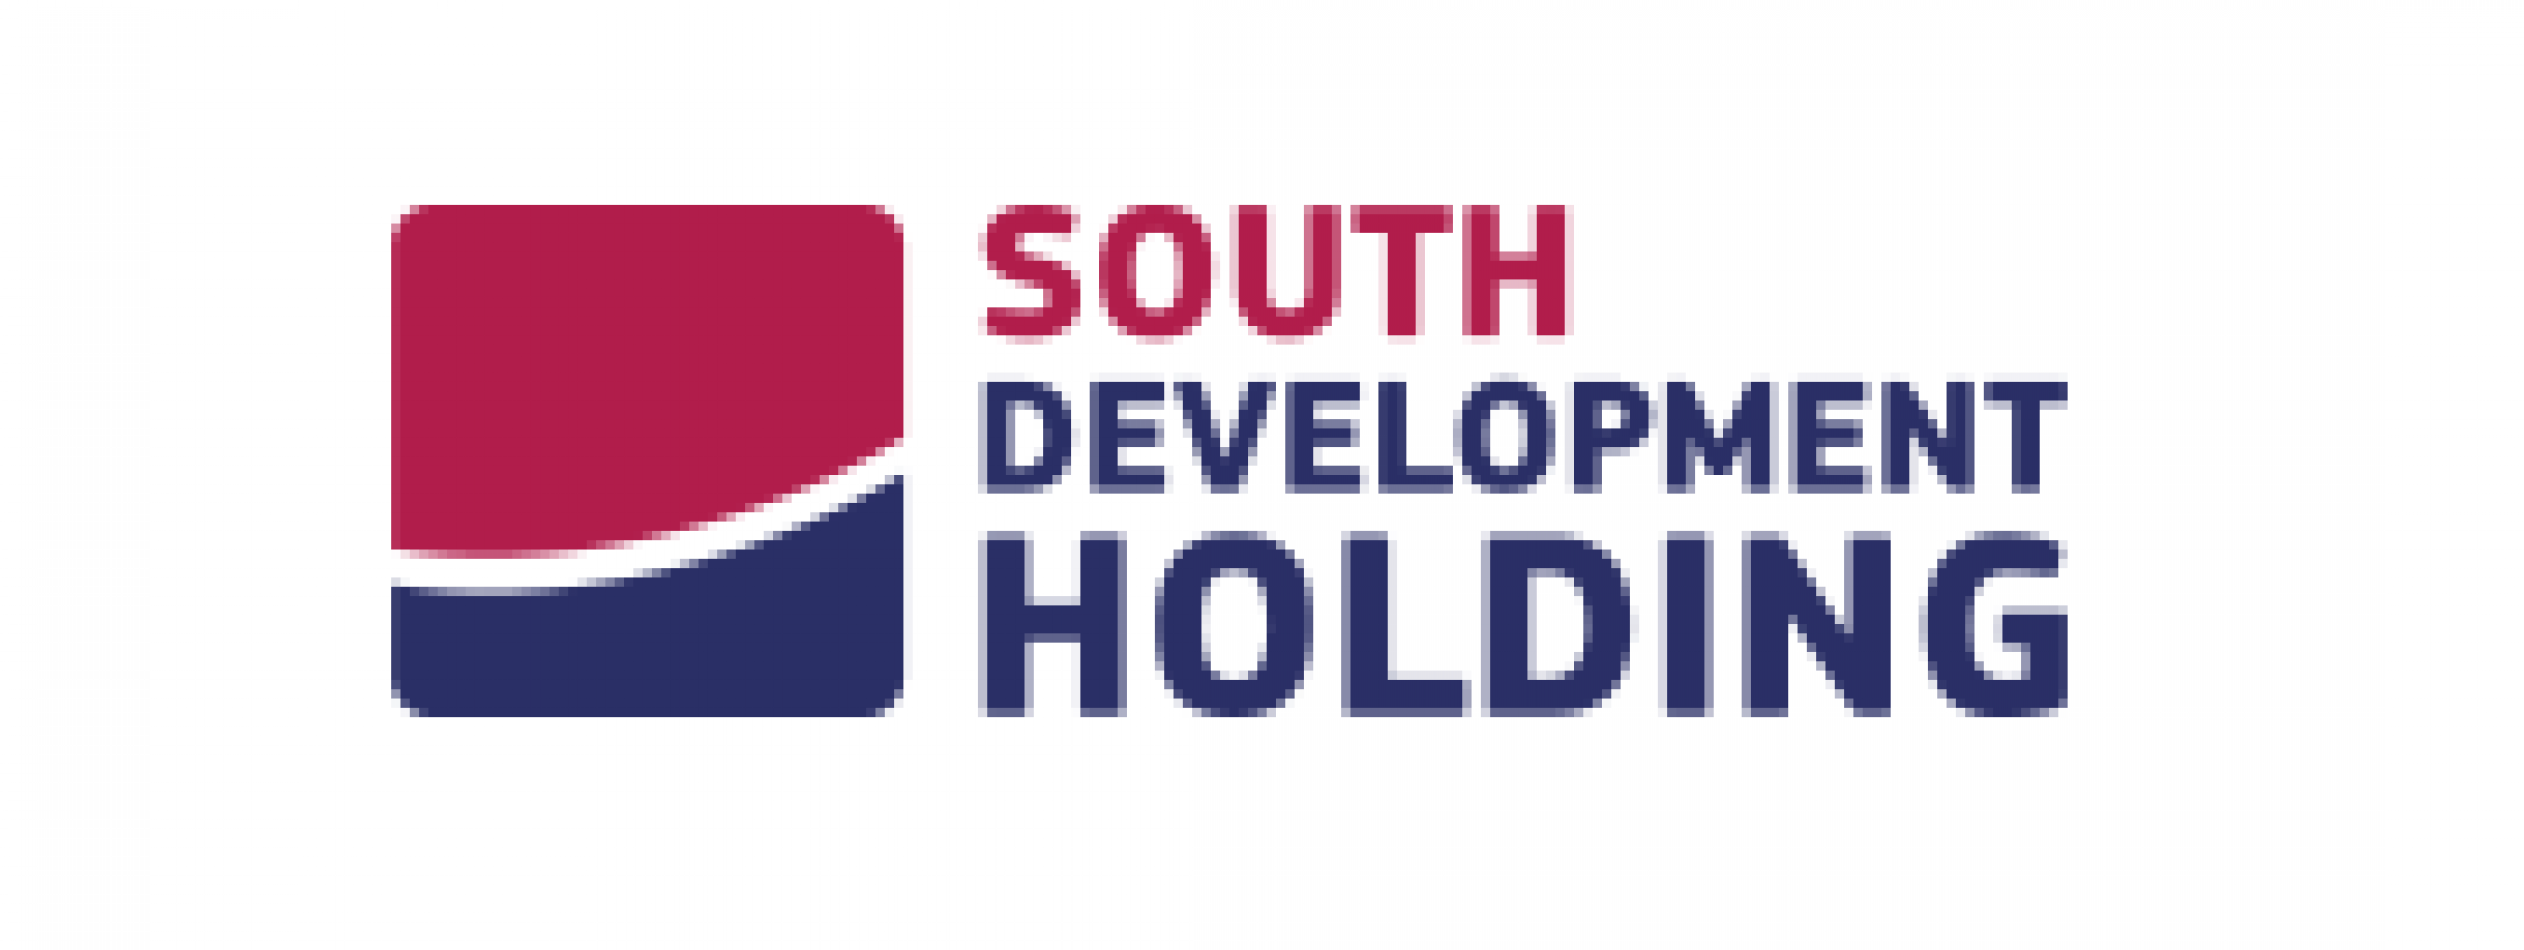 South Development Holding